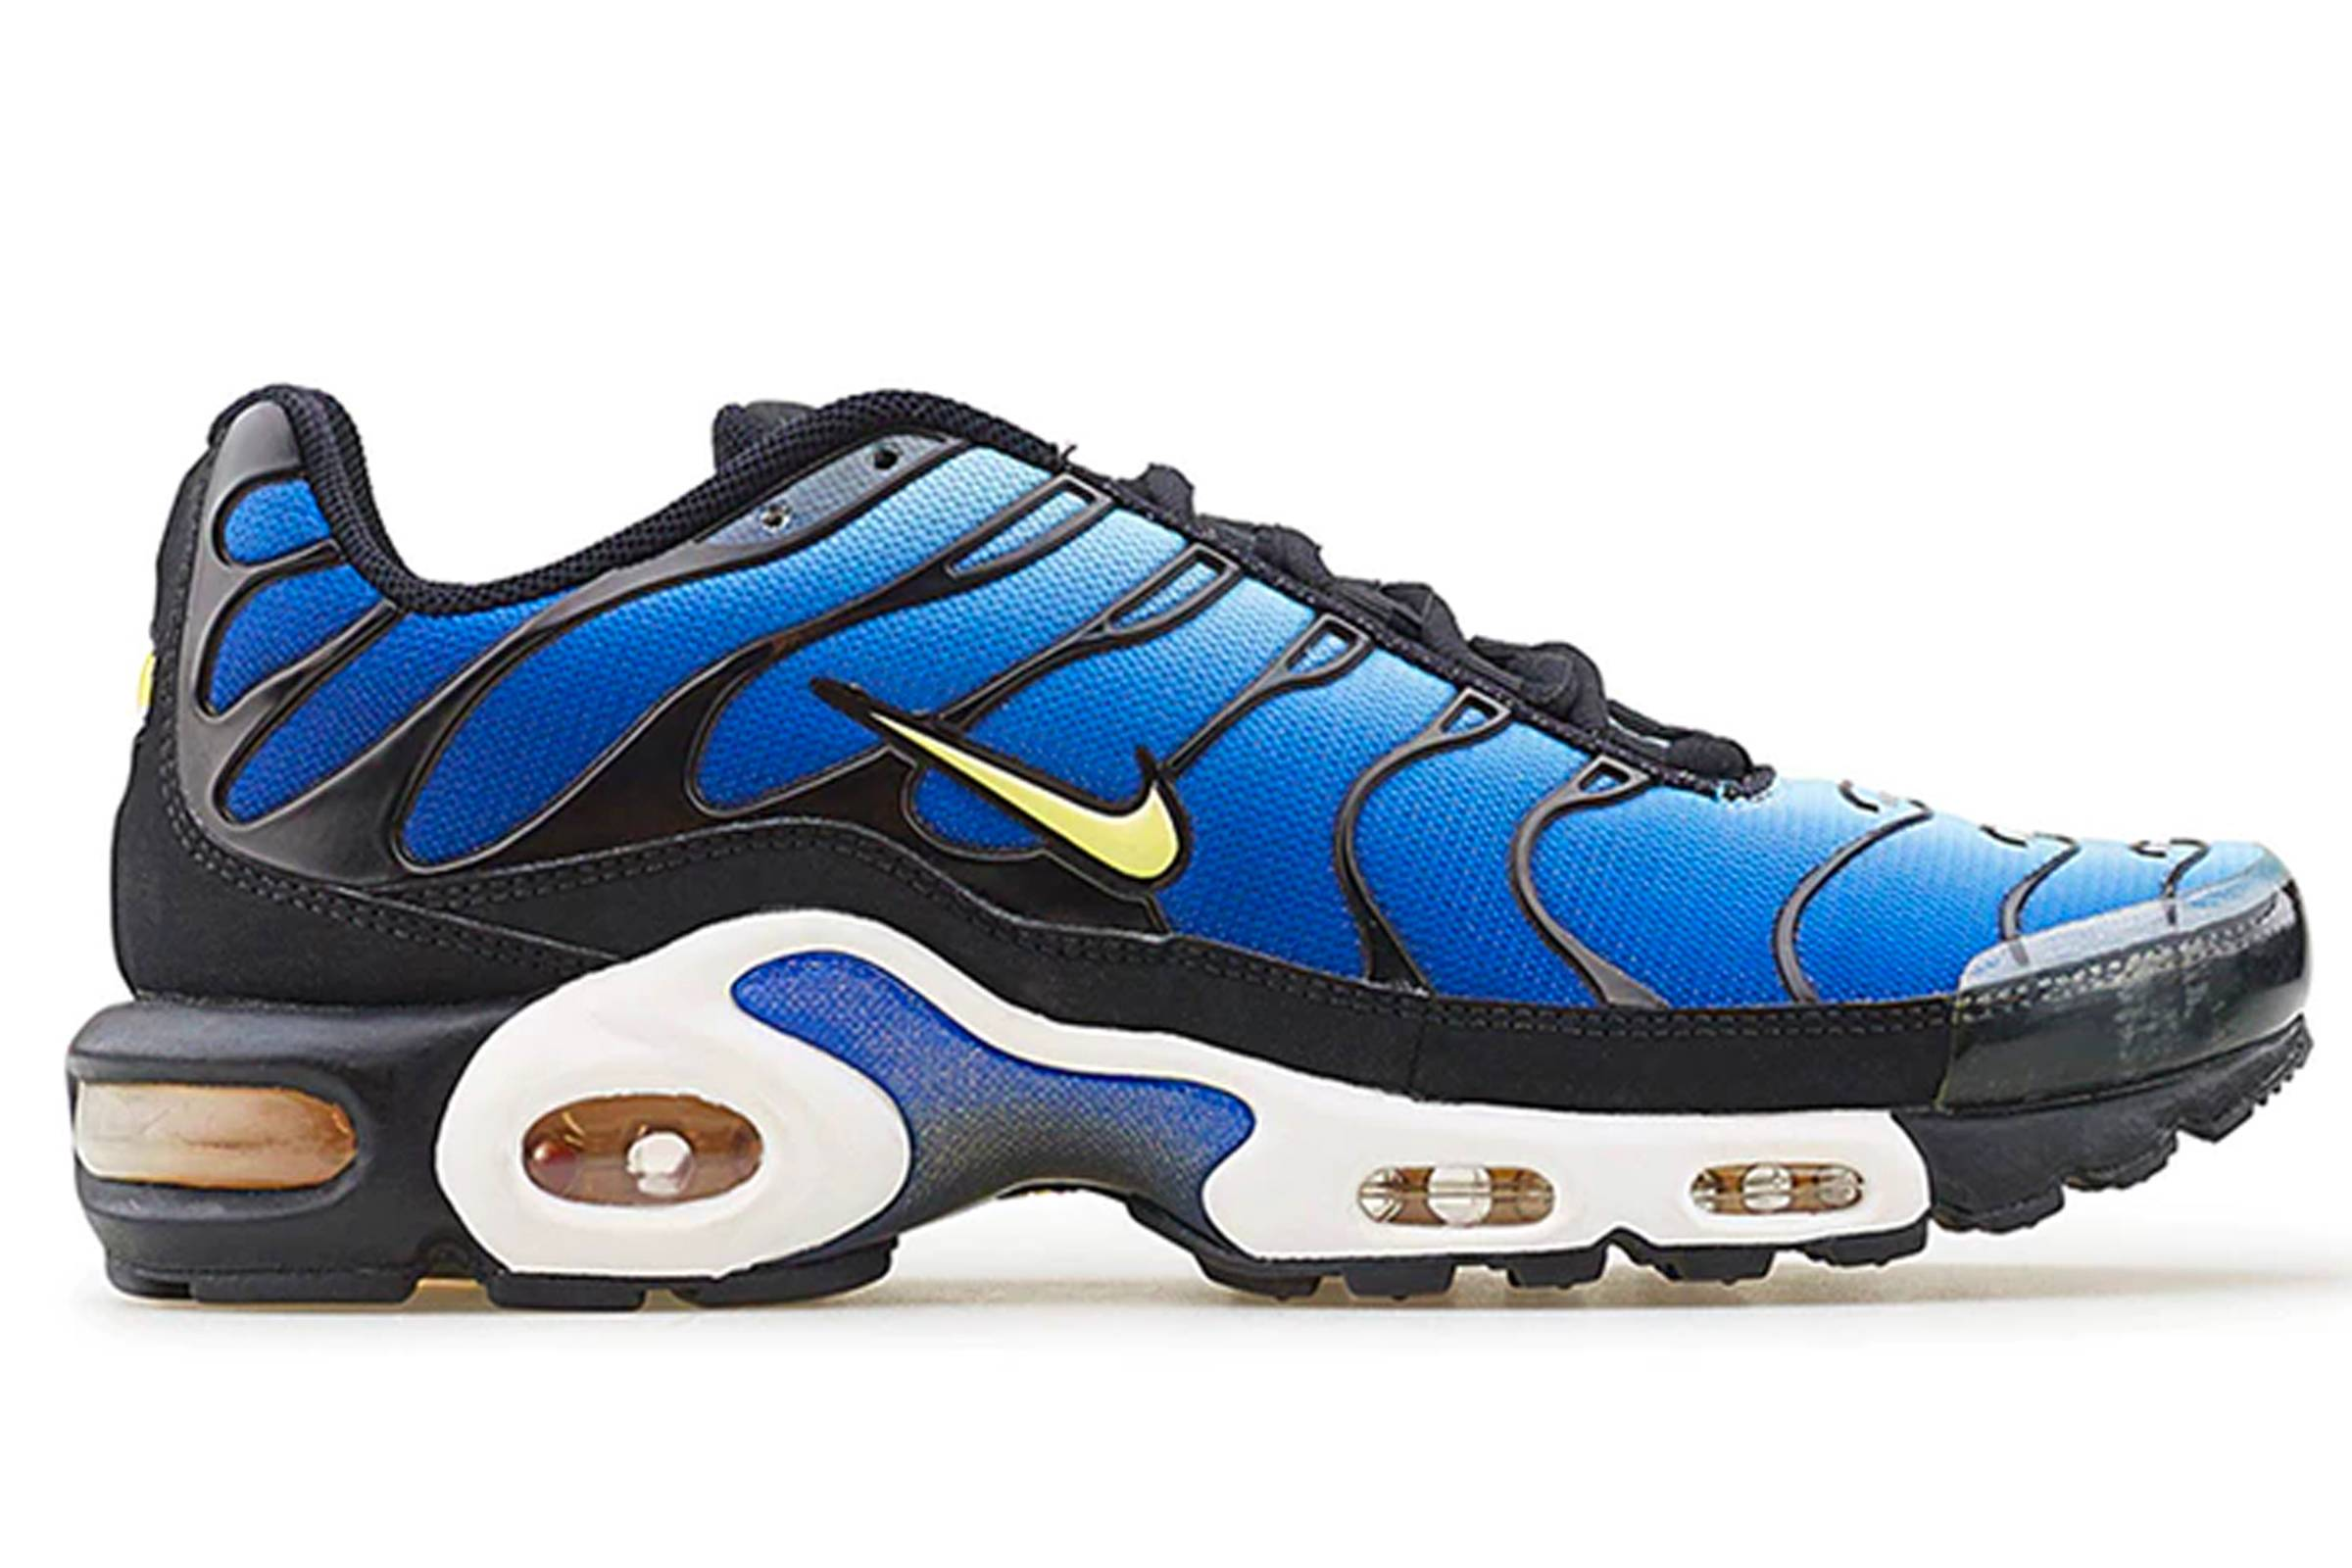 0dc5de05f56447 Tuned Up  A History of the Air Max Plus - Air Max Plus History - Grailed